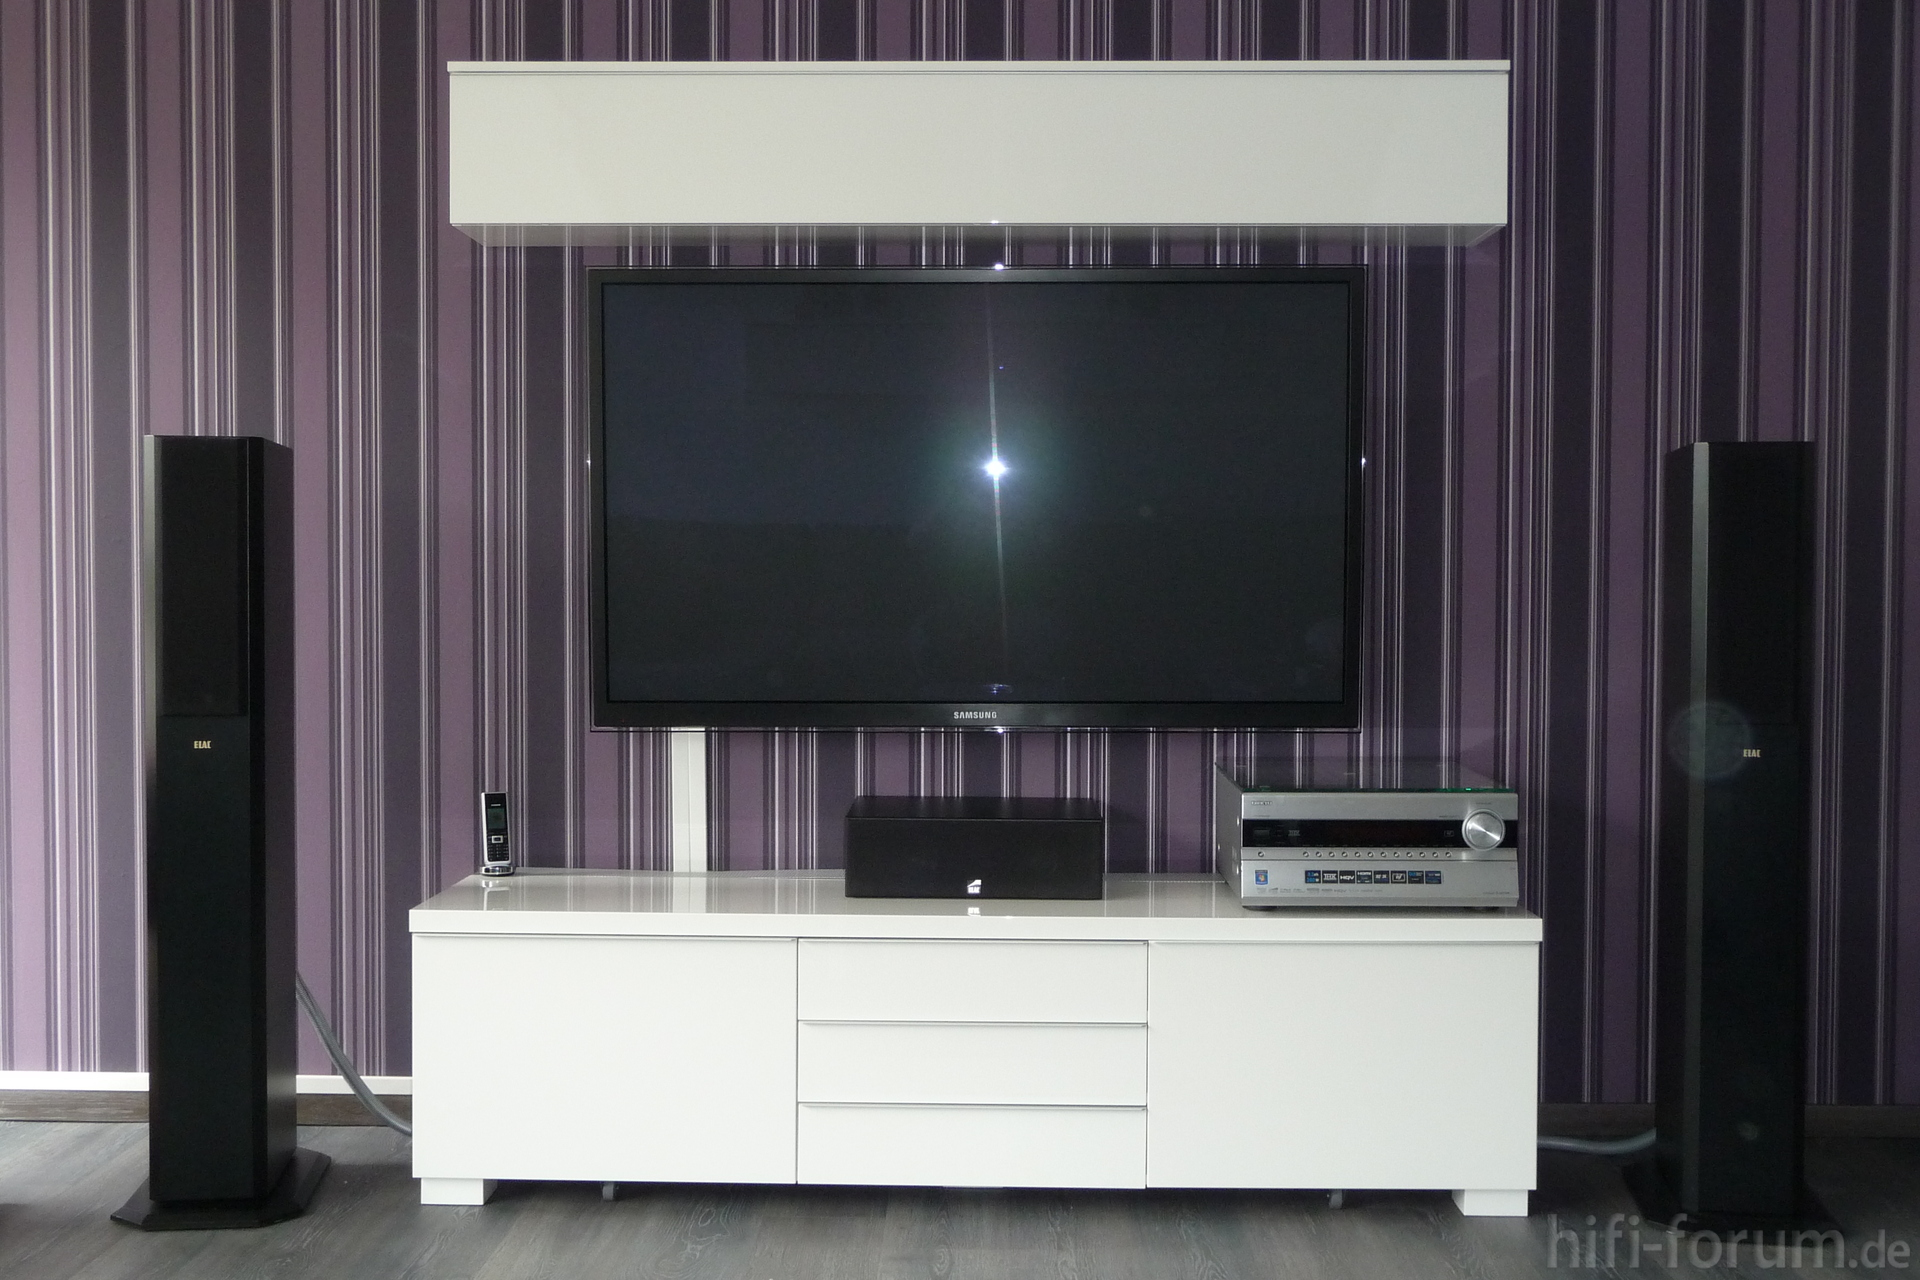 ps59d7000 mt ikea tv m bel heimkino ikea mt ps59d7000 samsung tvm bel hifi. Black Bedroom Furniture Sets. Home Design Ideas